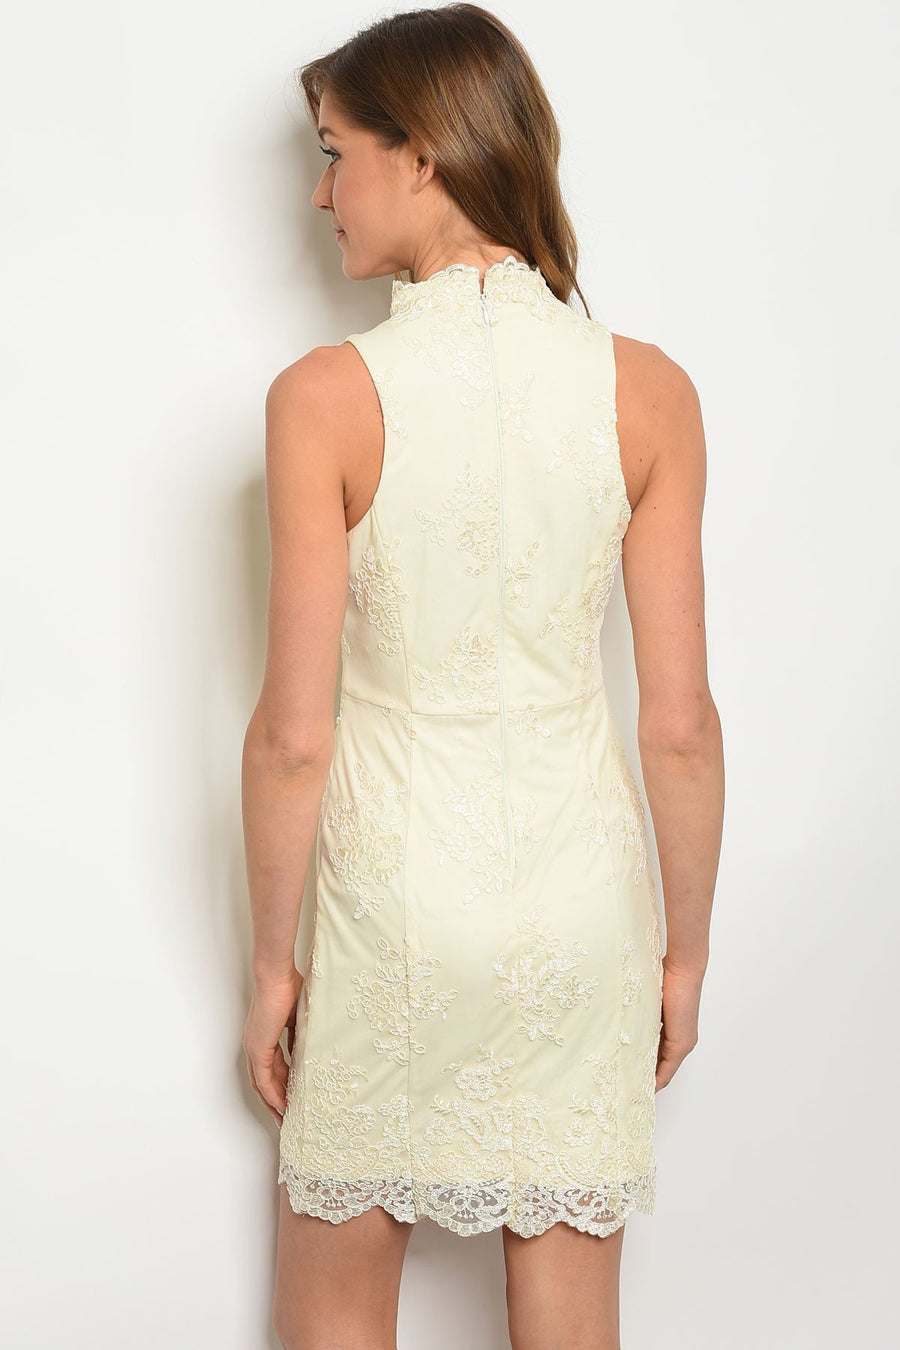 Sweetheart Sleeveless Cream Dress - TrendyLyfeUSA